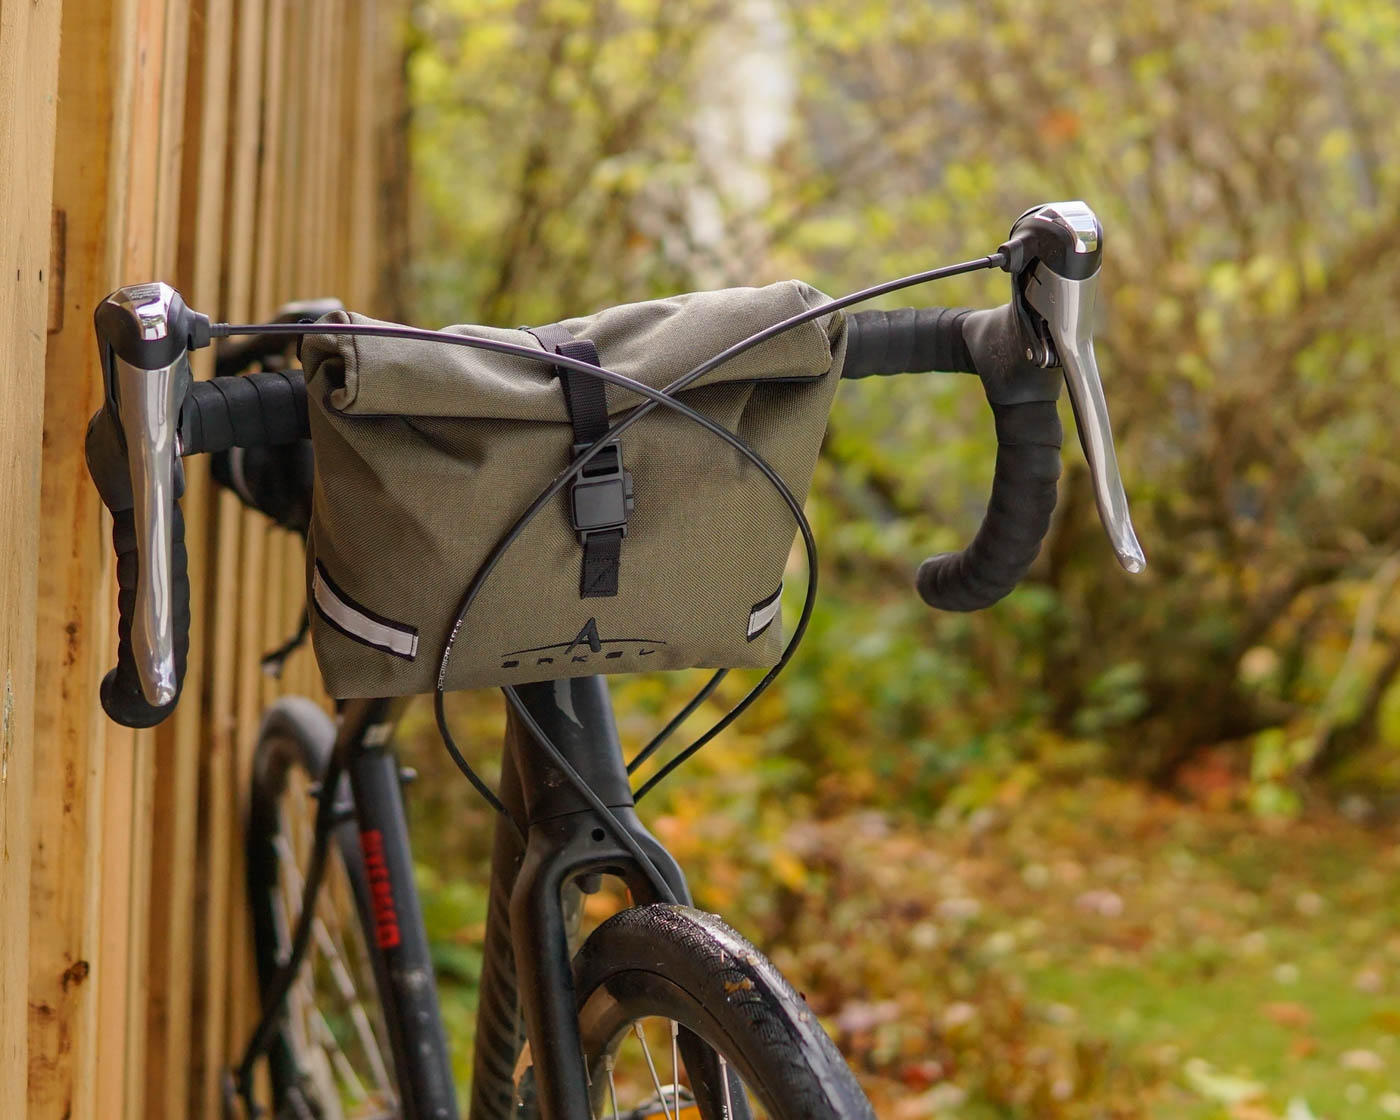 Waterproof handlebar bag Signature BB in the olive color installed on a gravel bike